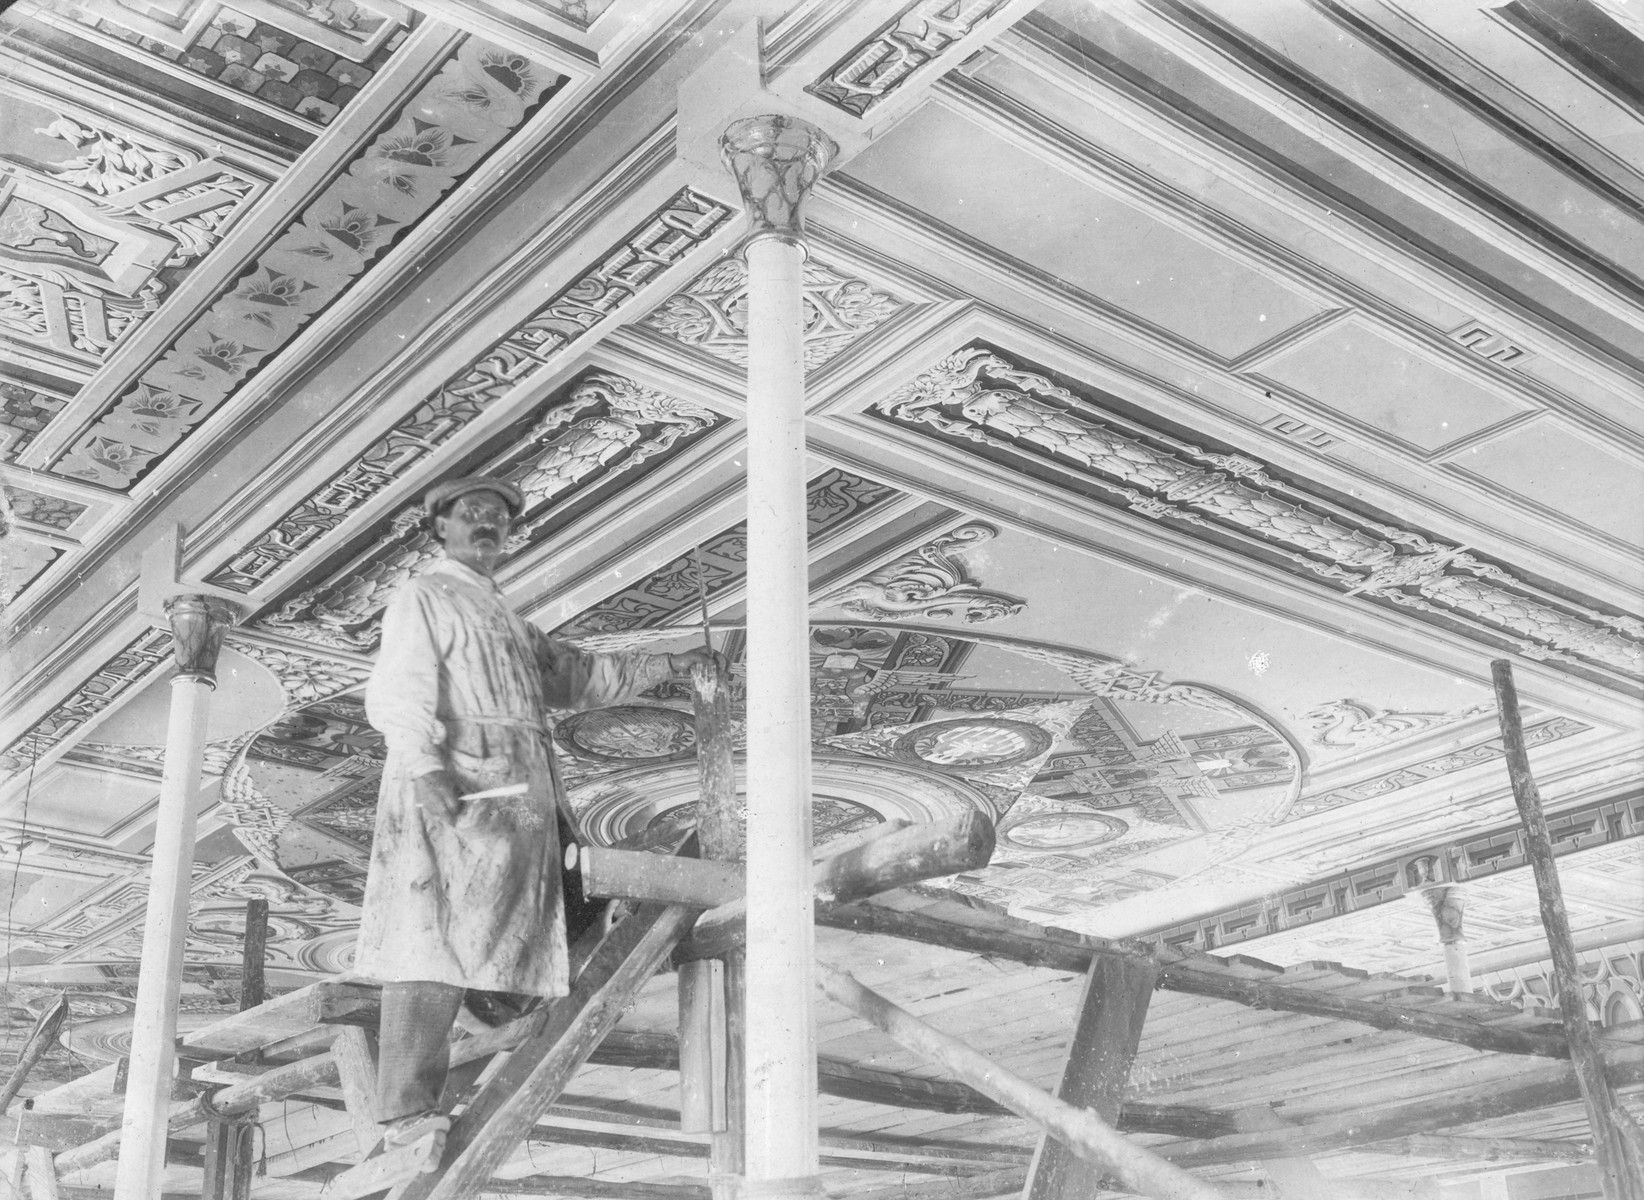 Perec Willenberg paints a ceiling mural in the old synagogue in Czestochowa.